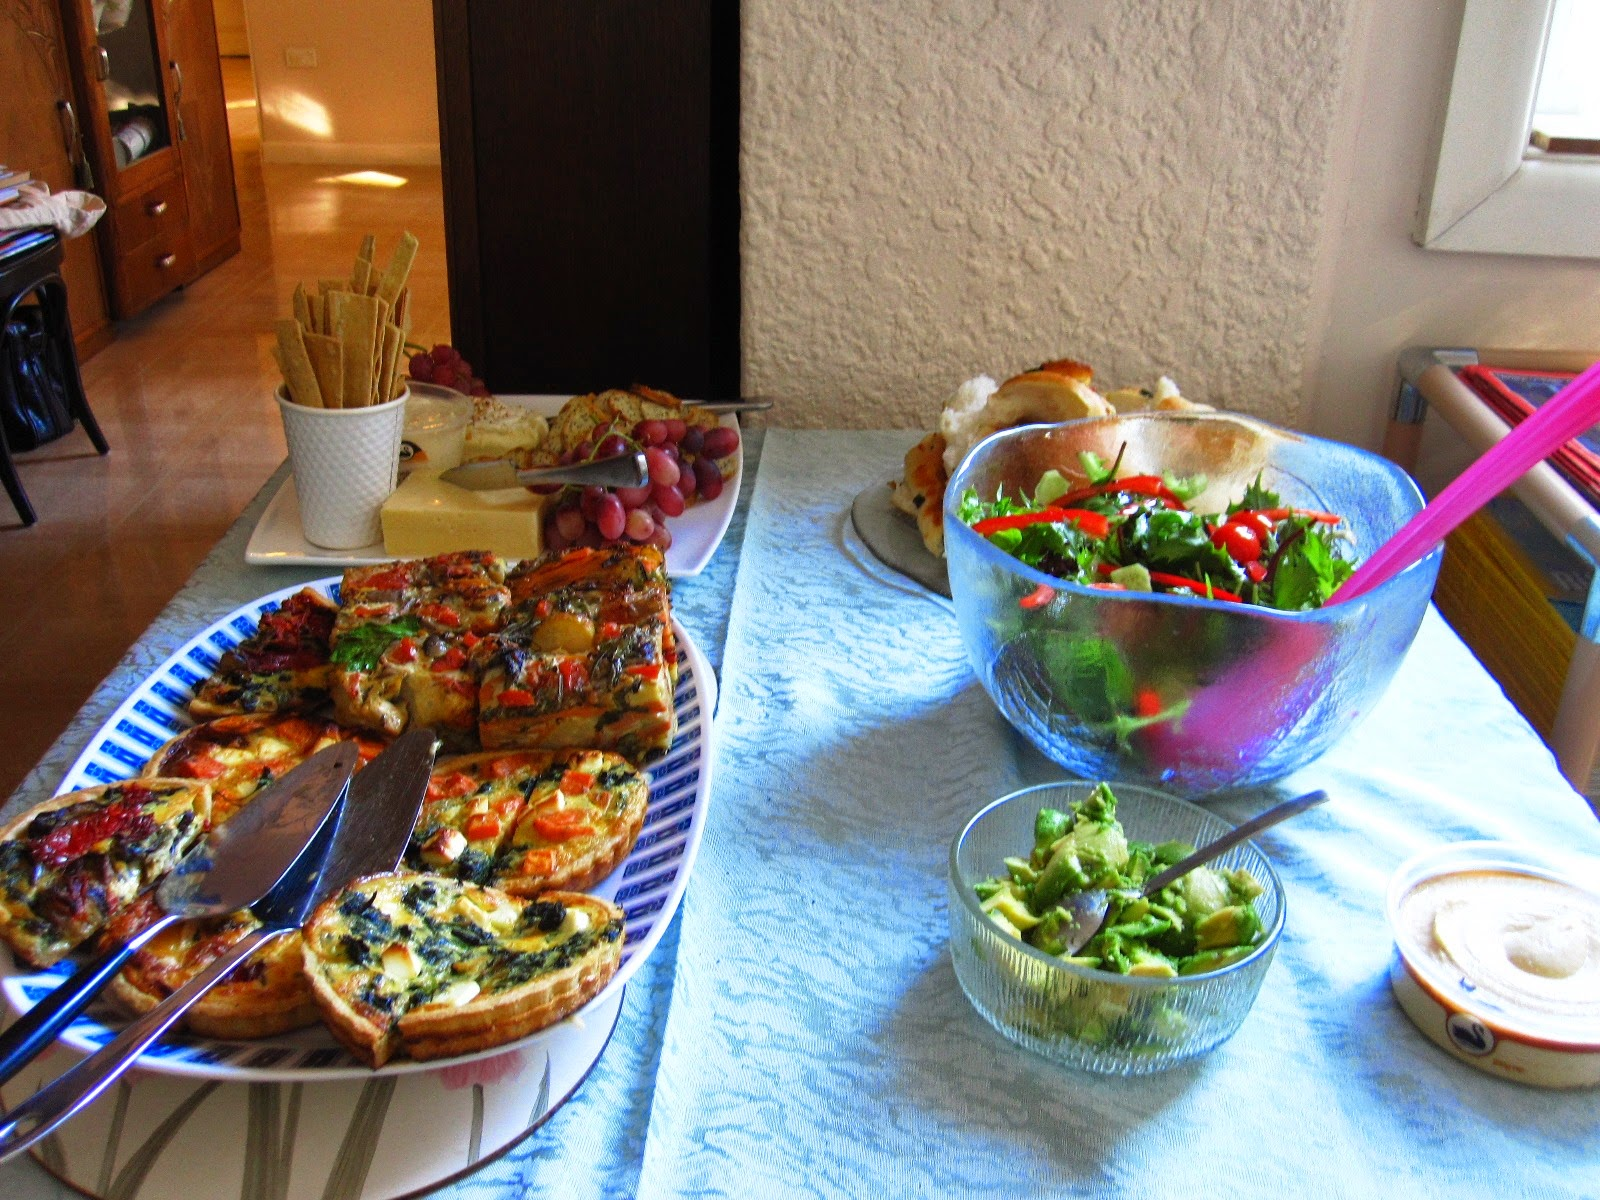 Selection of lunch dishes laid out on a table.